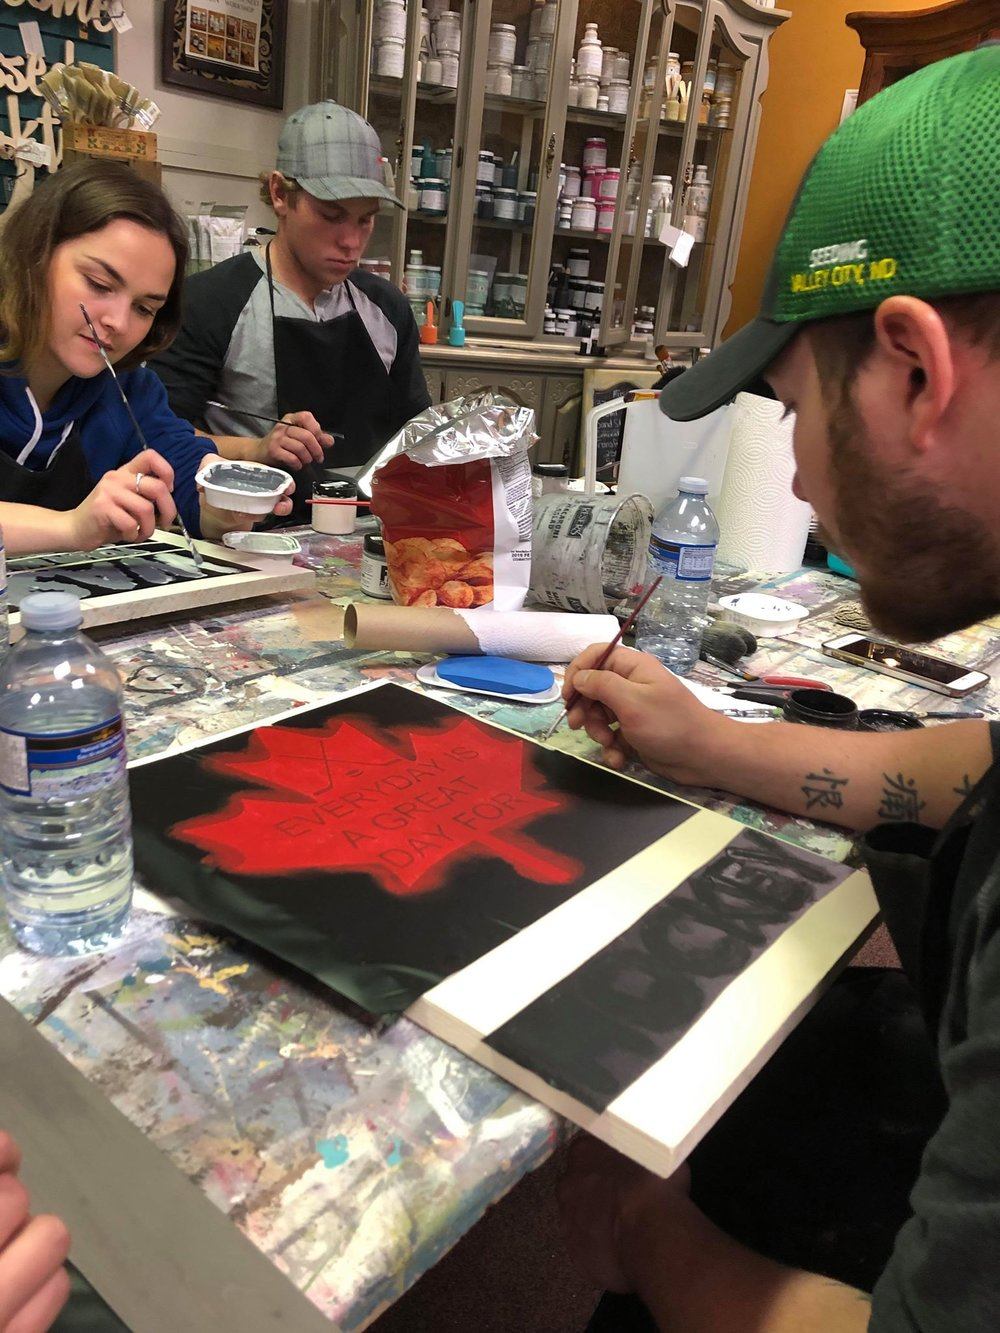 Sign Making - We supply the stencils, paint, brushes, and workspace - you bring your designs and the people!